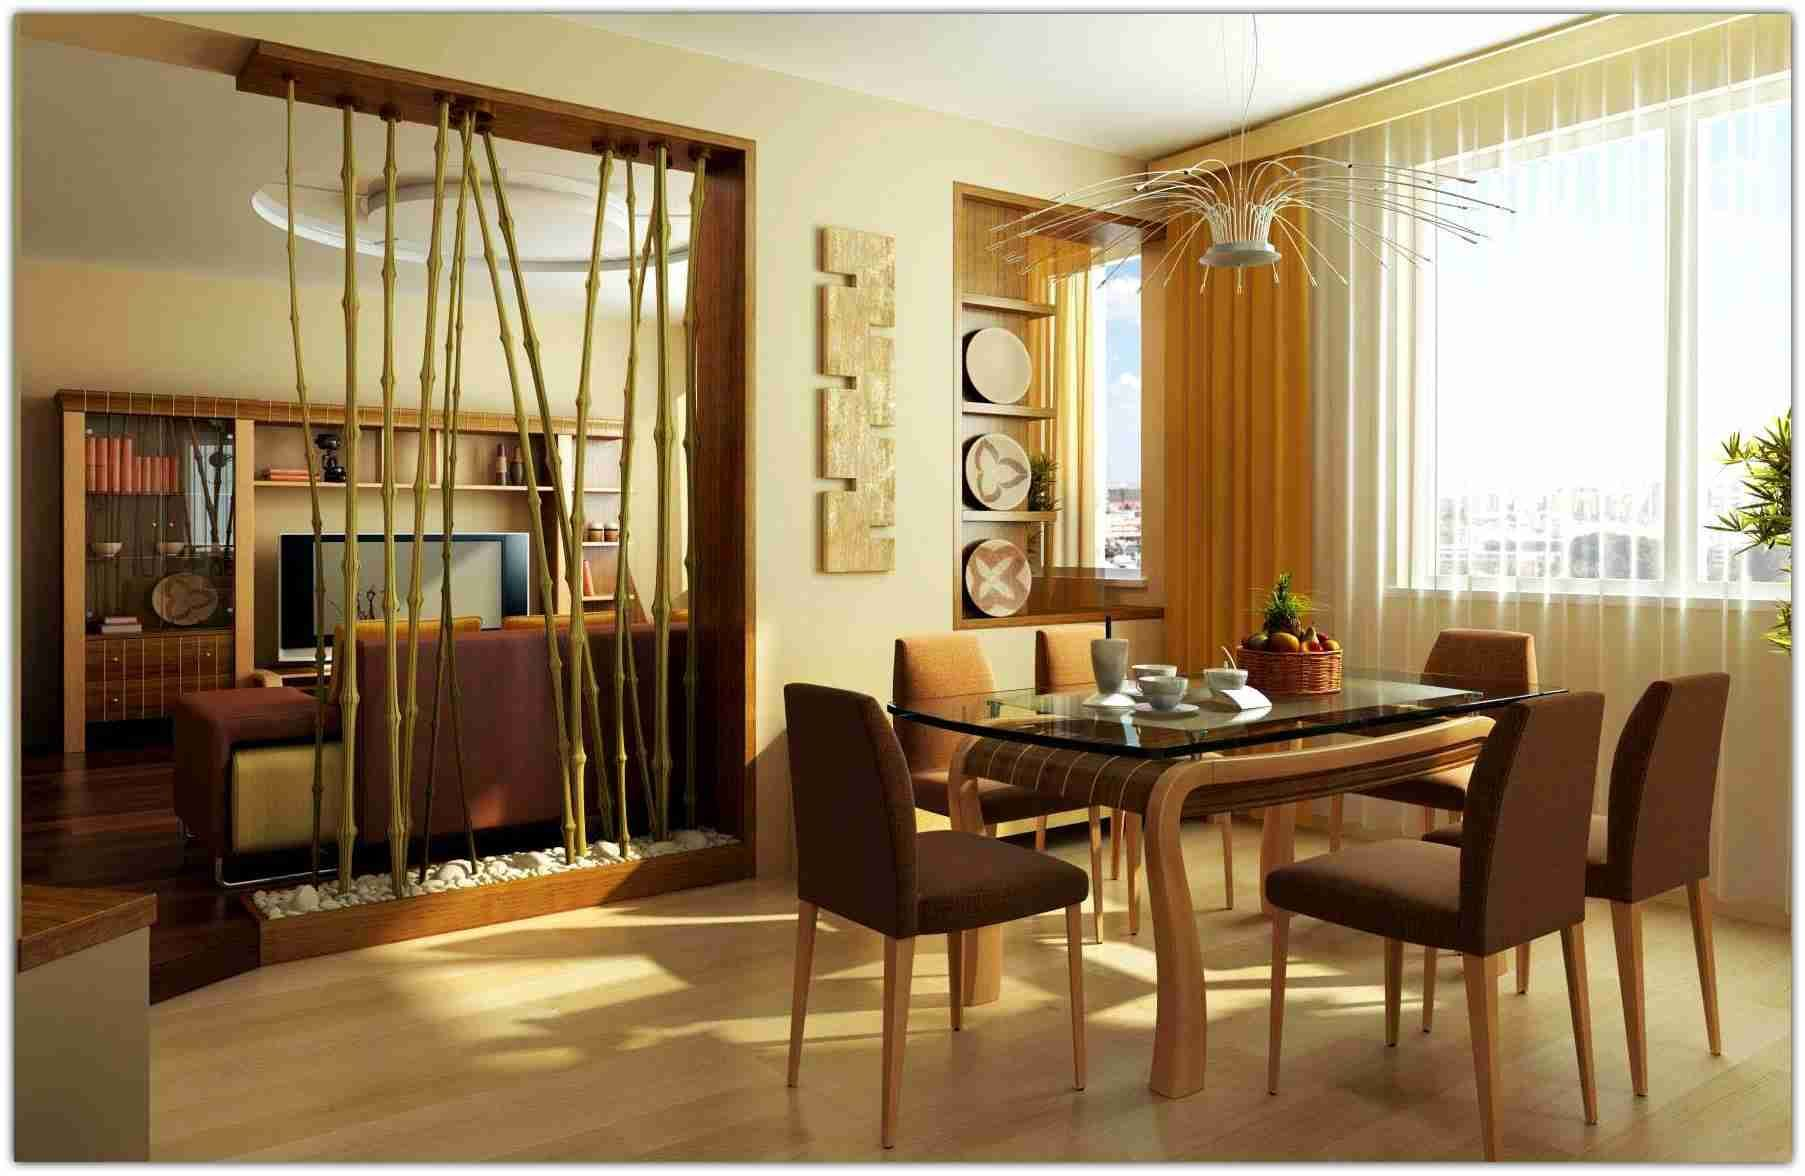 classy hiring a designer for home renovation. When you plan to remodel your home  or revamp bed room decide go for renovation can either hire an interior designer DIY that is Do It Wallpaper Ideas Comedor p rpura Dormitorio lindo Living